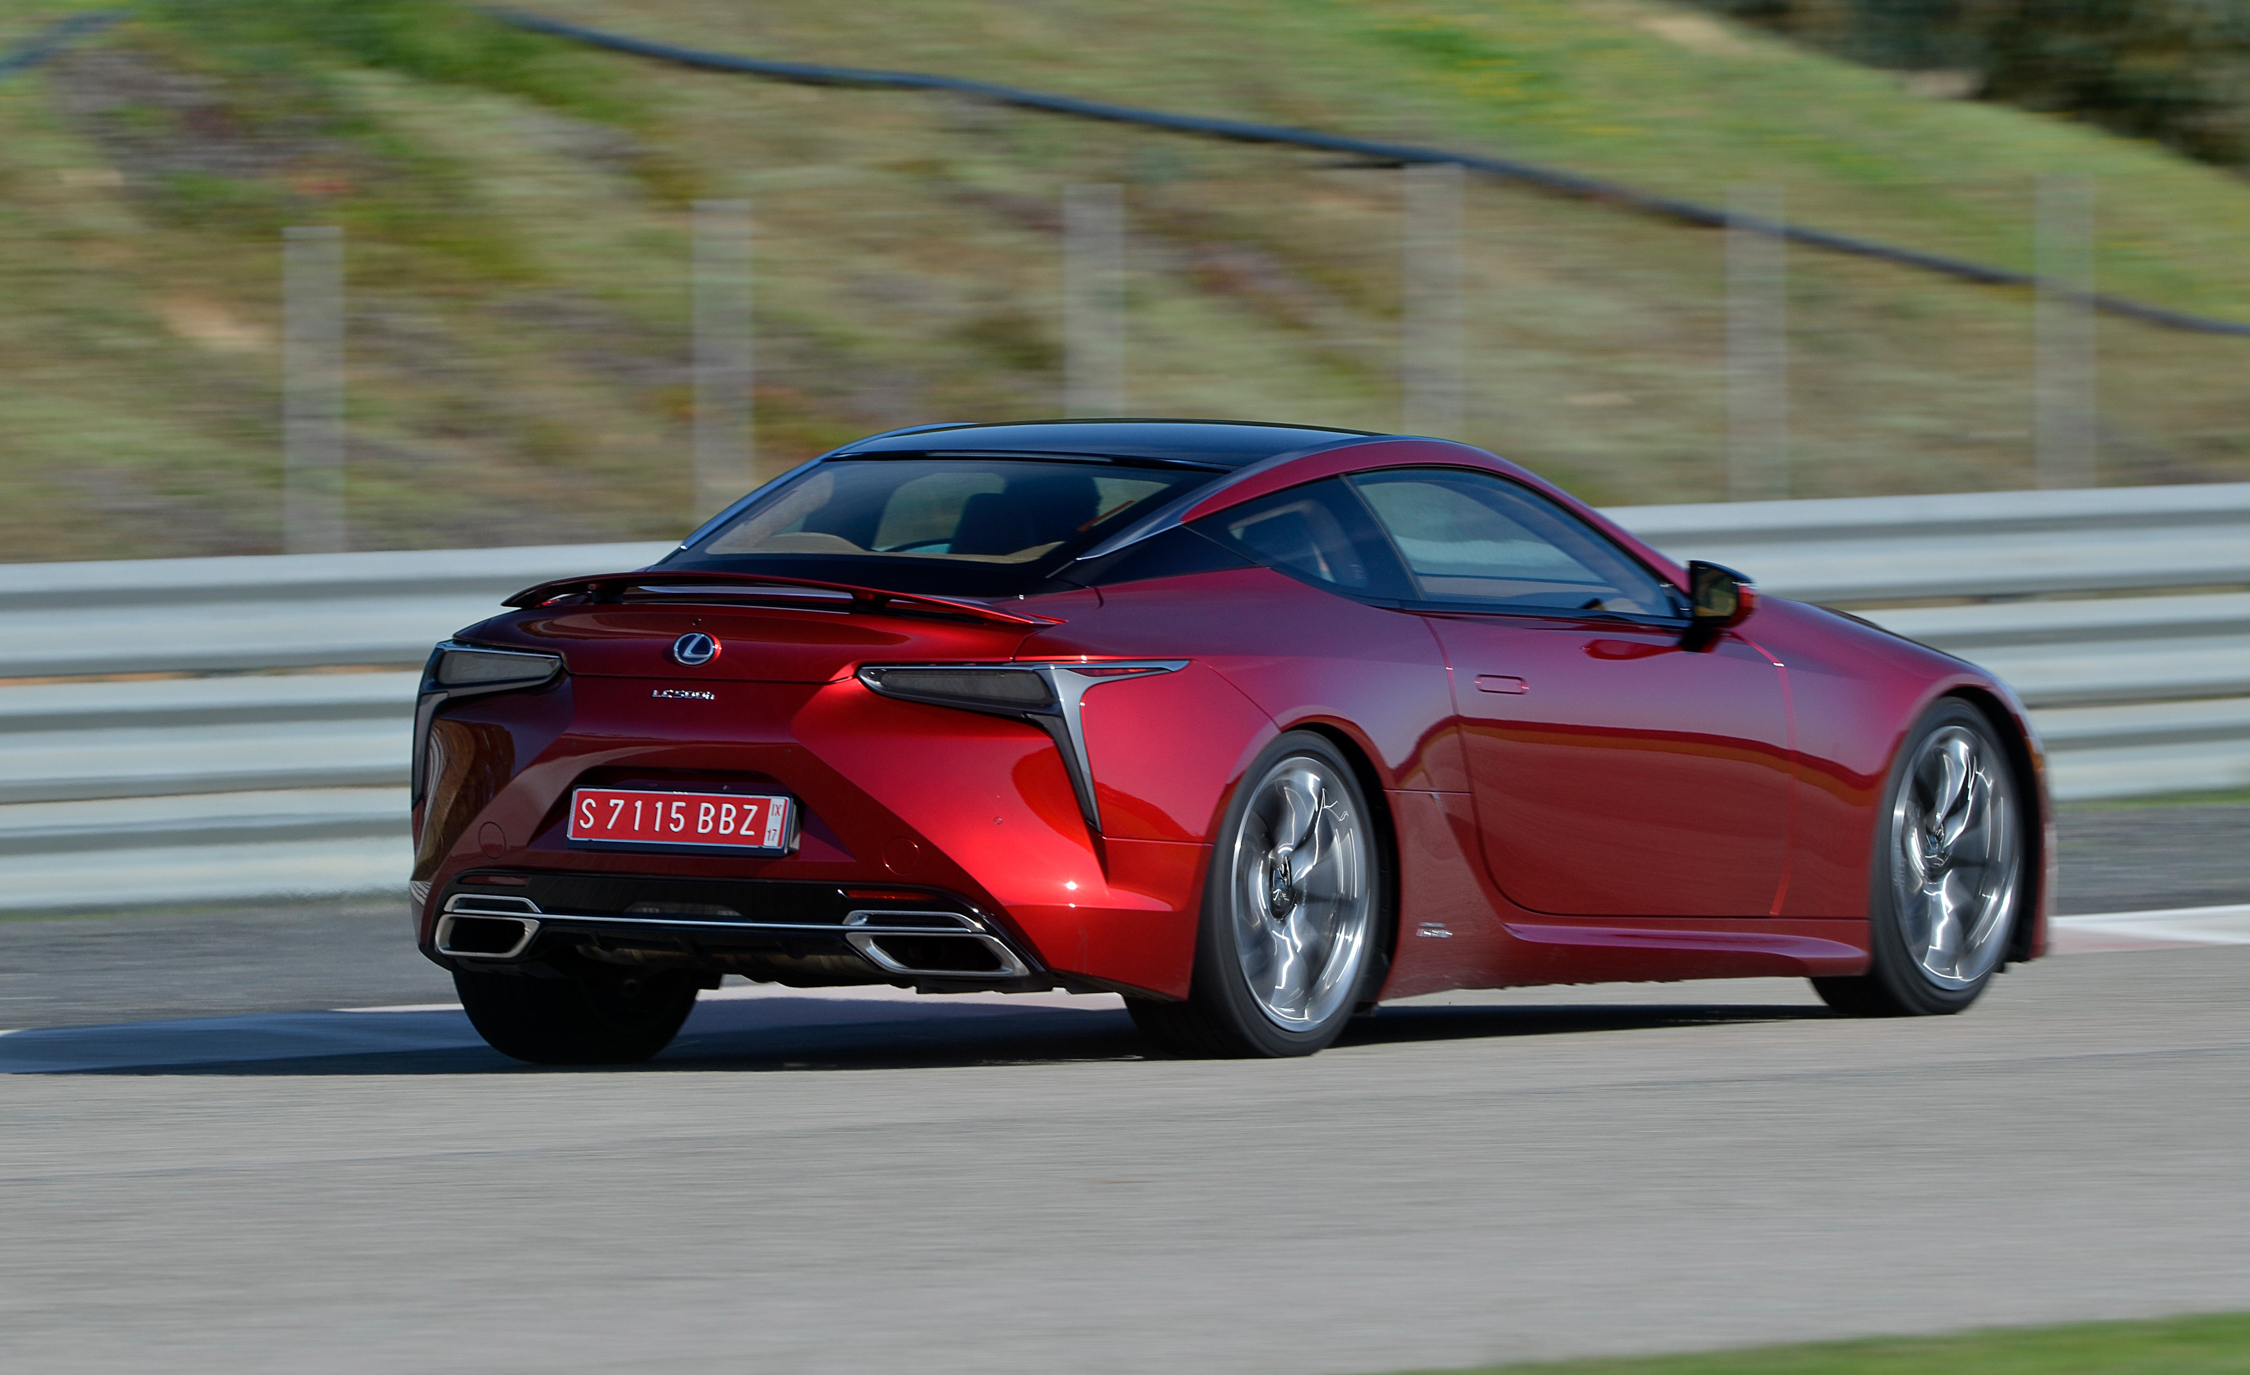 2018 Lexus Lc 500 Red Test Drive Side And Rear View (Photo 6 of 84)